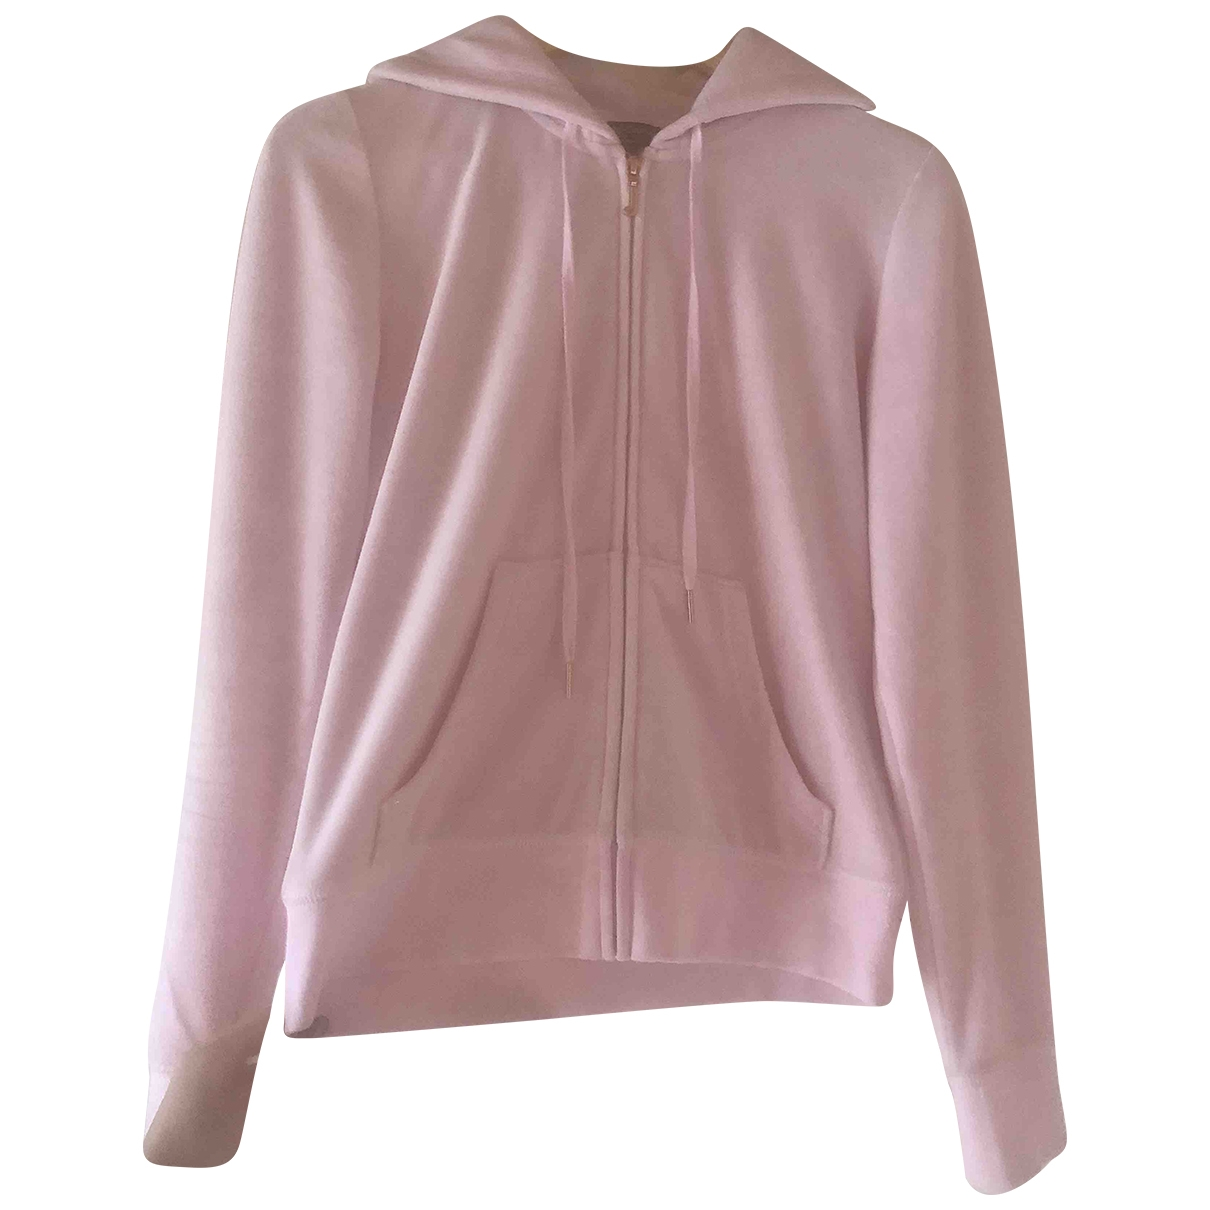 Juicy Couture \N Jacke in  Rosa Baumwolle